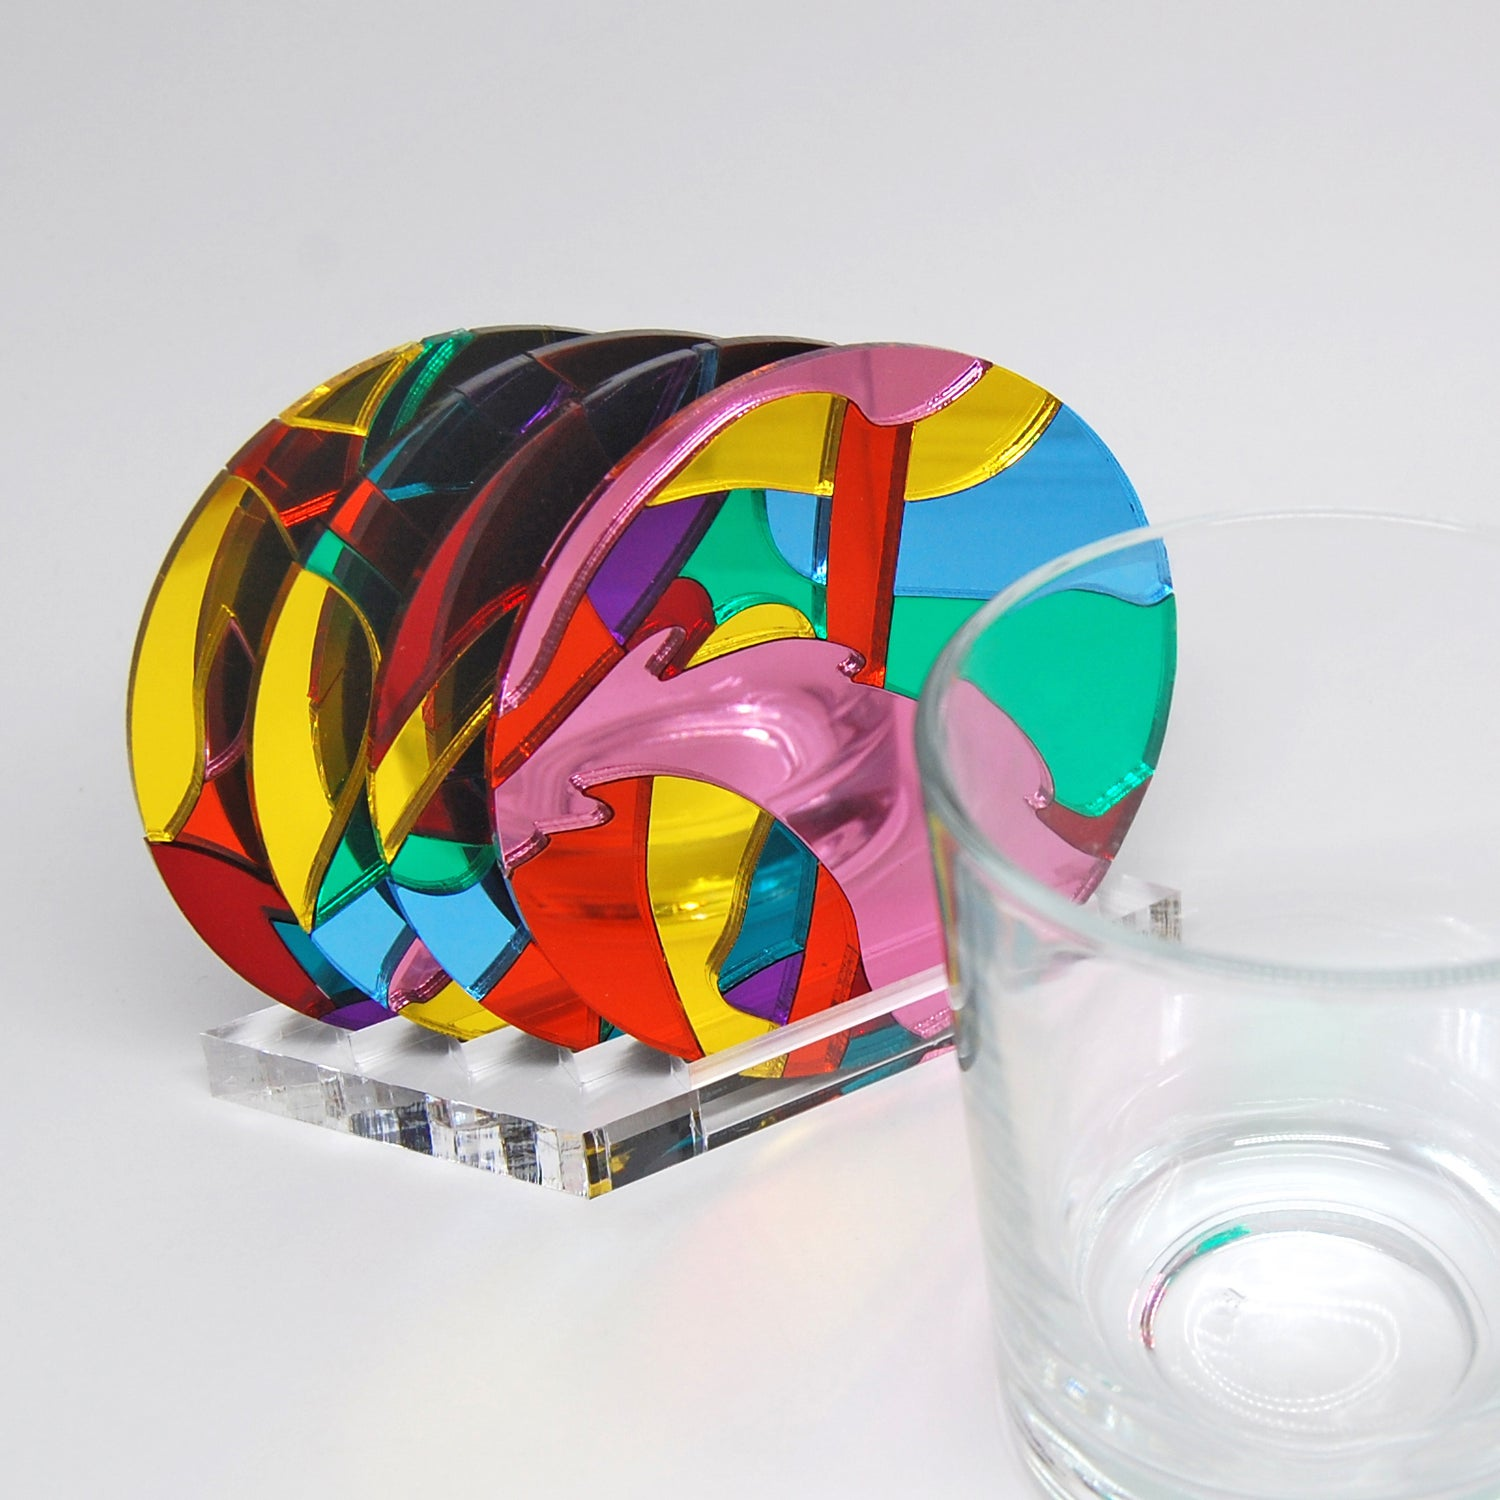 Image of Mirror coasters